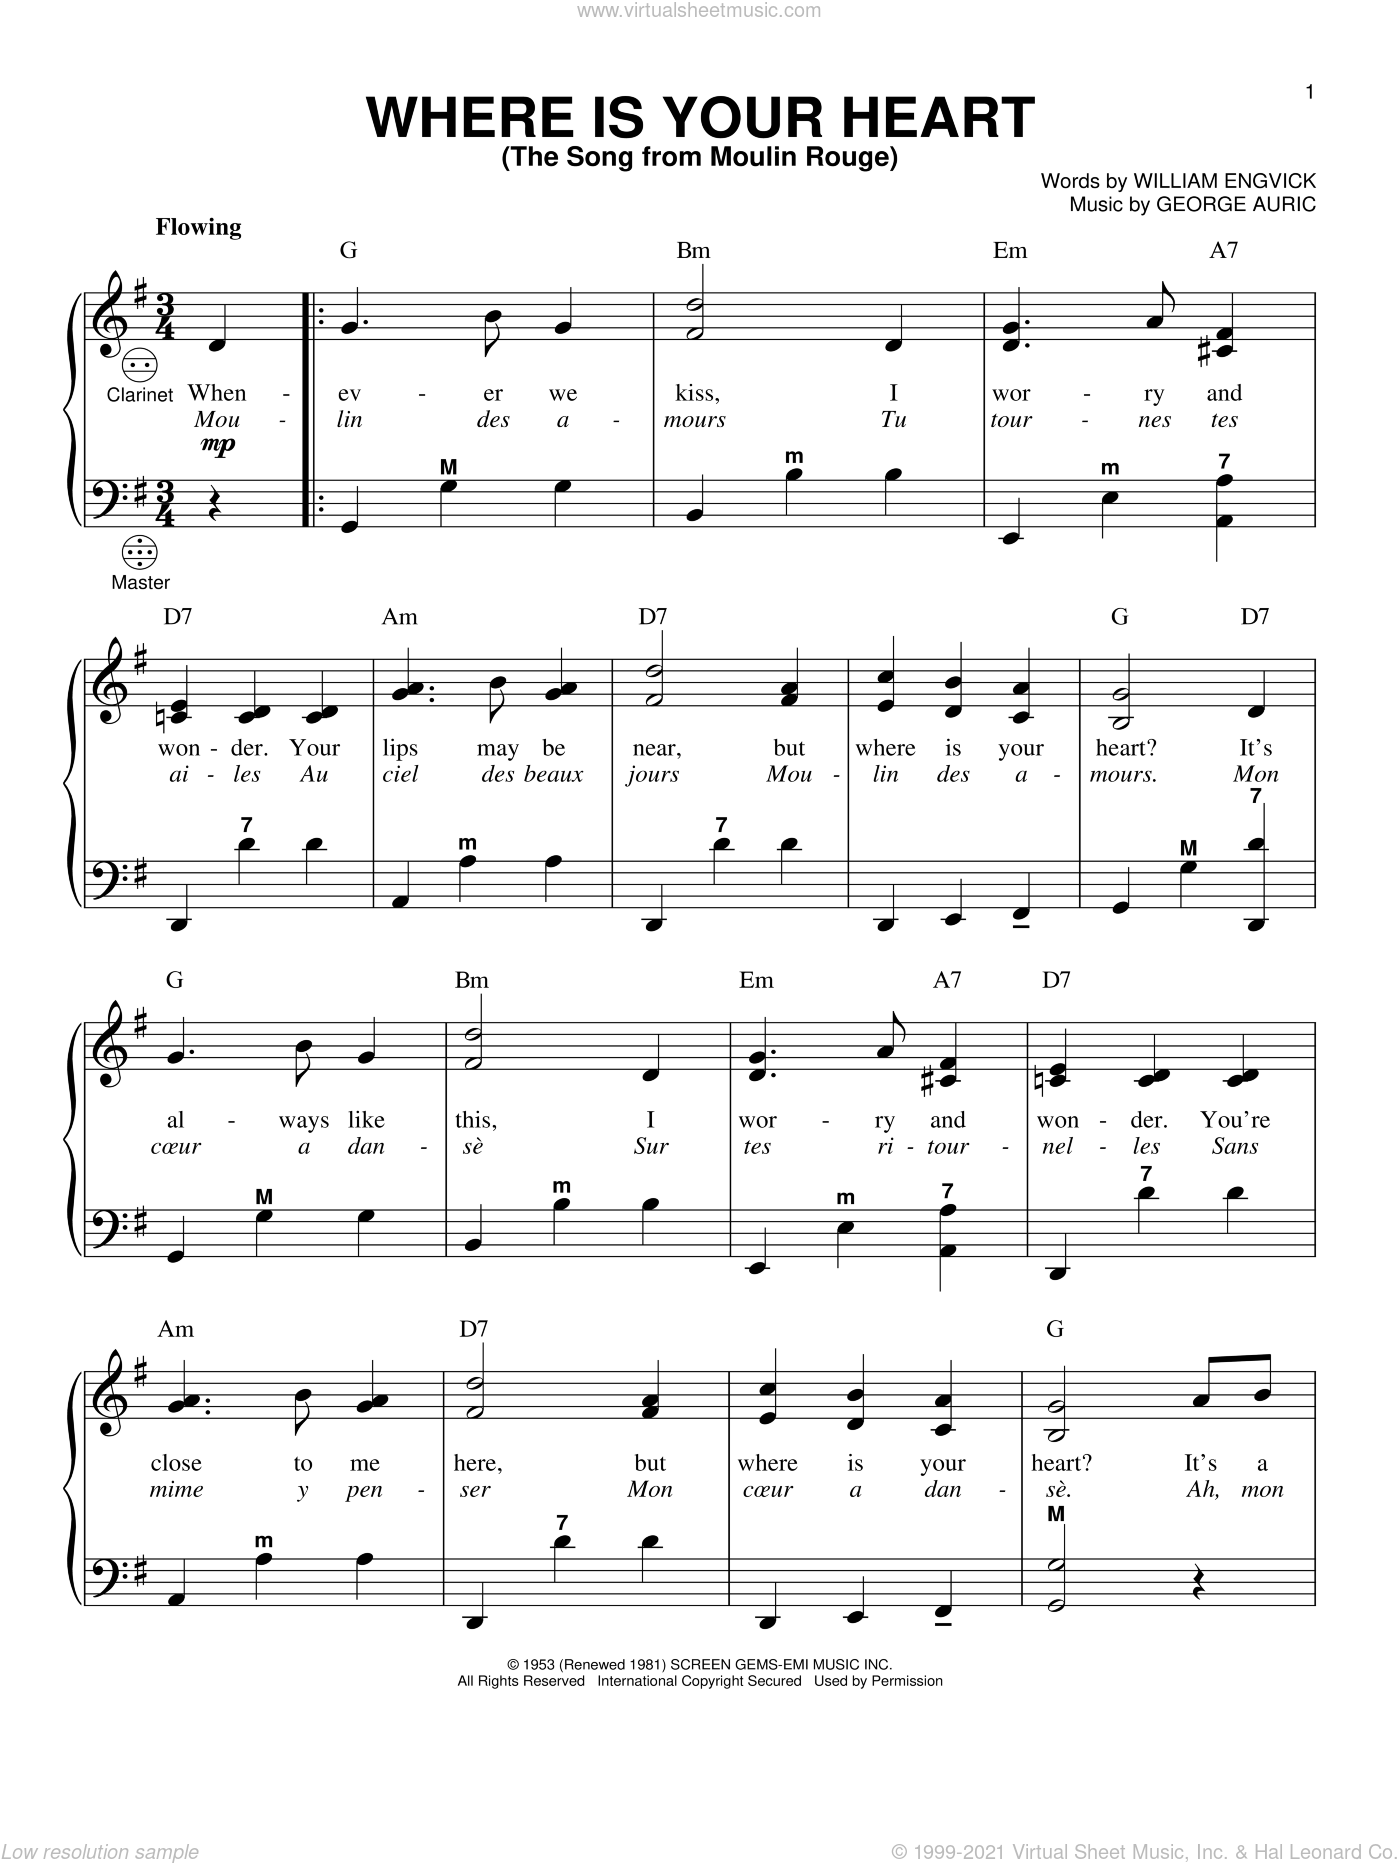 Where Is Your Heart (The Song From Moulin Rouge) sheet music for accordion by William Engvick